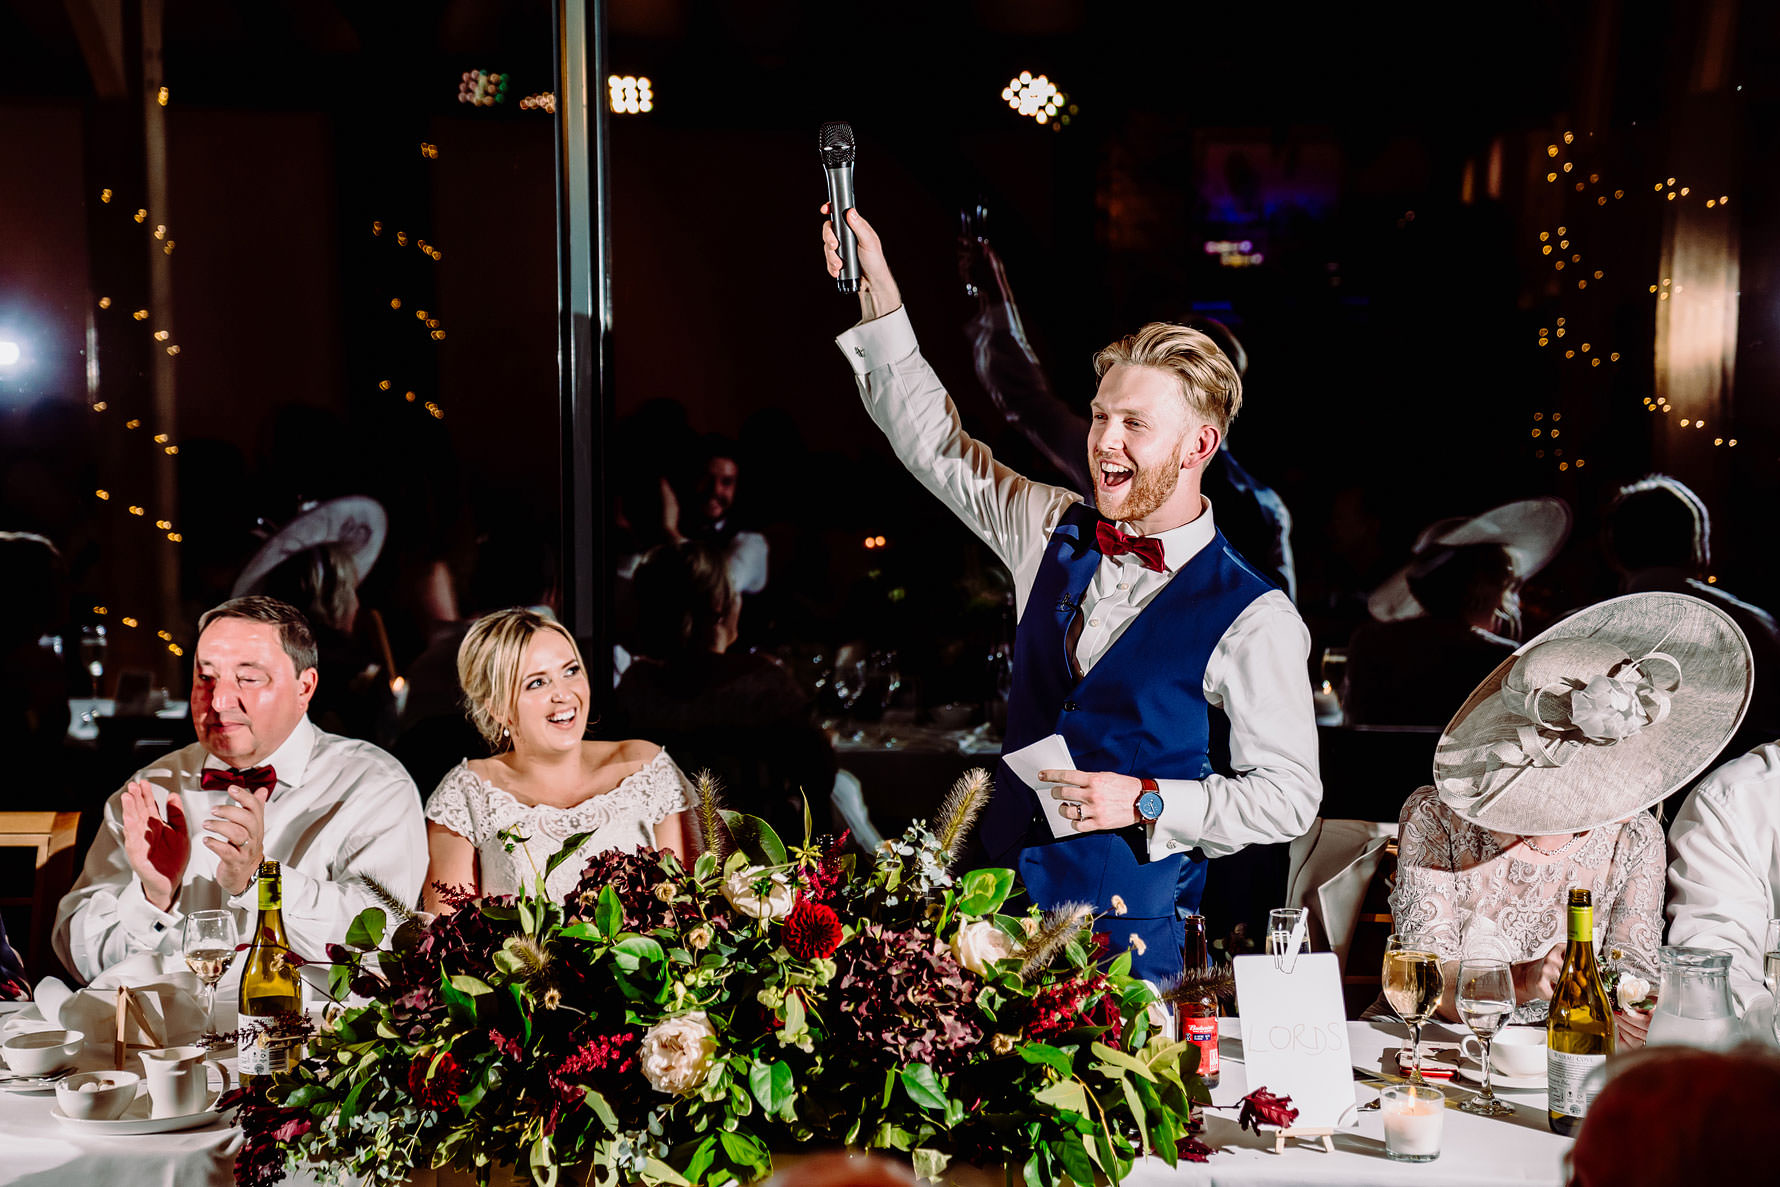 an animated groom during his speech